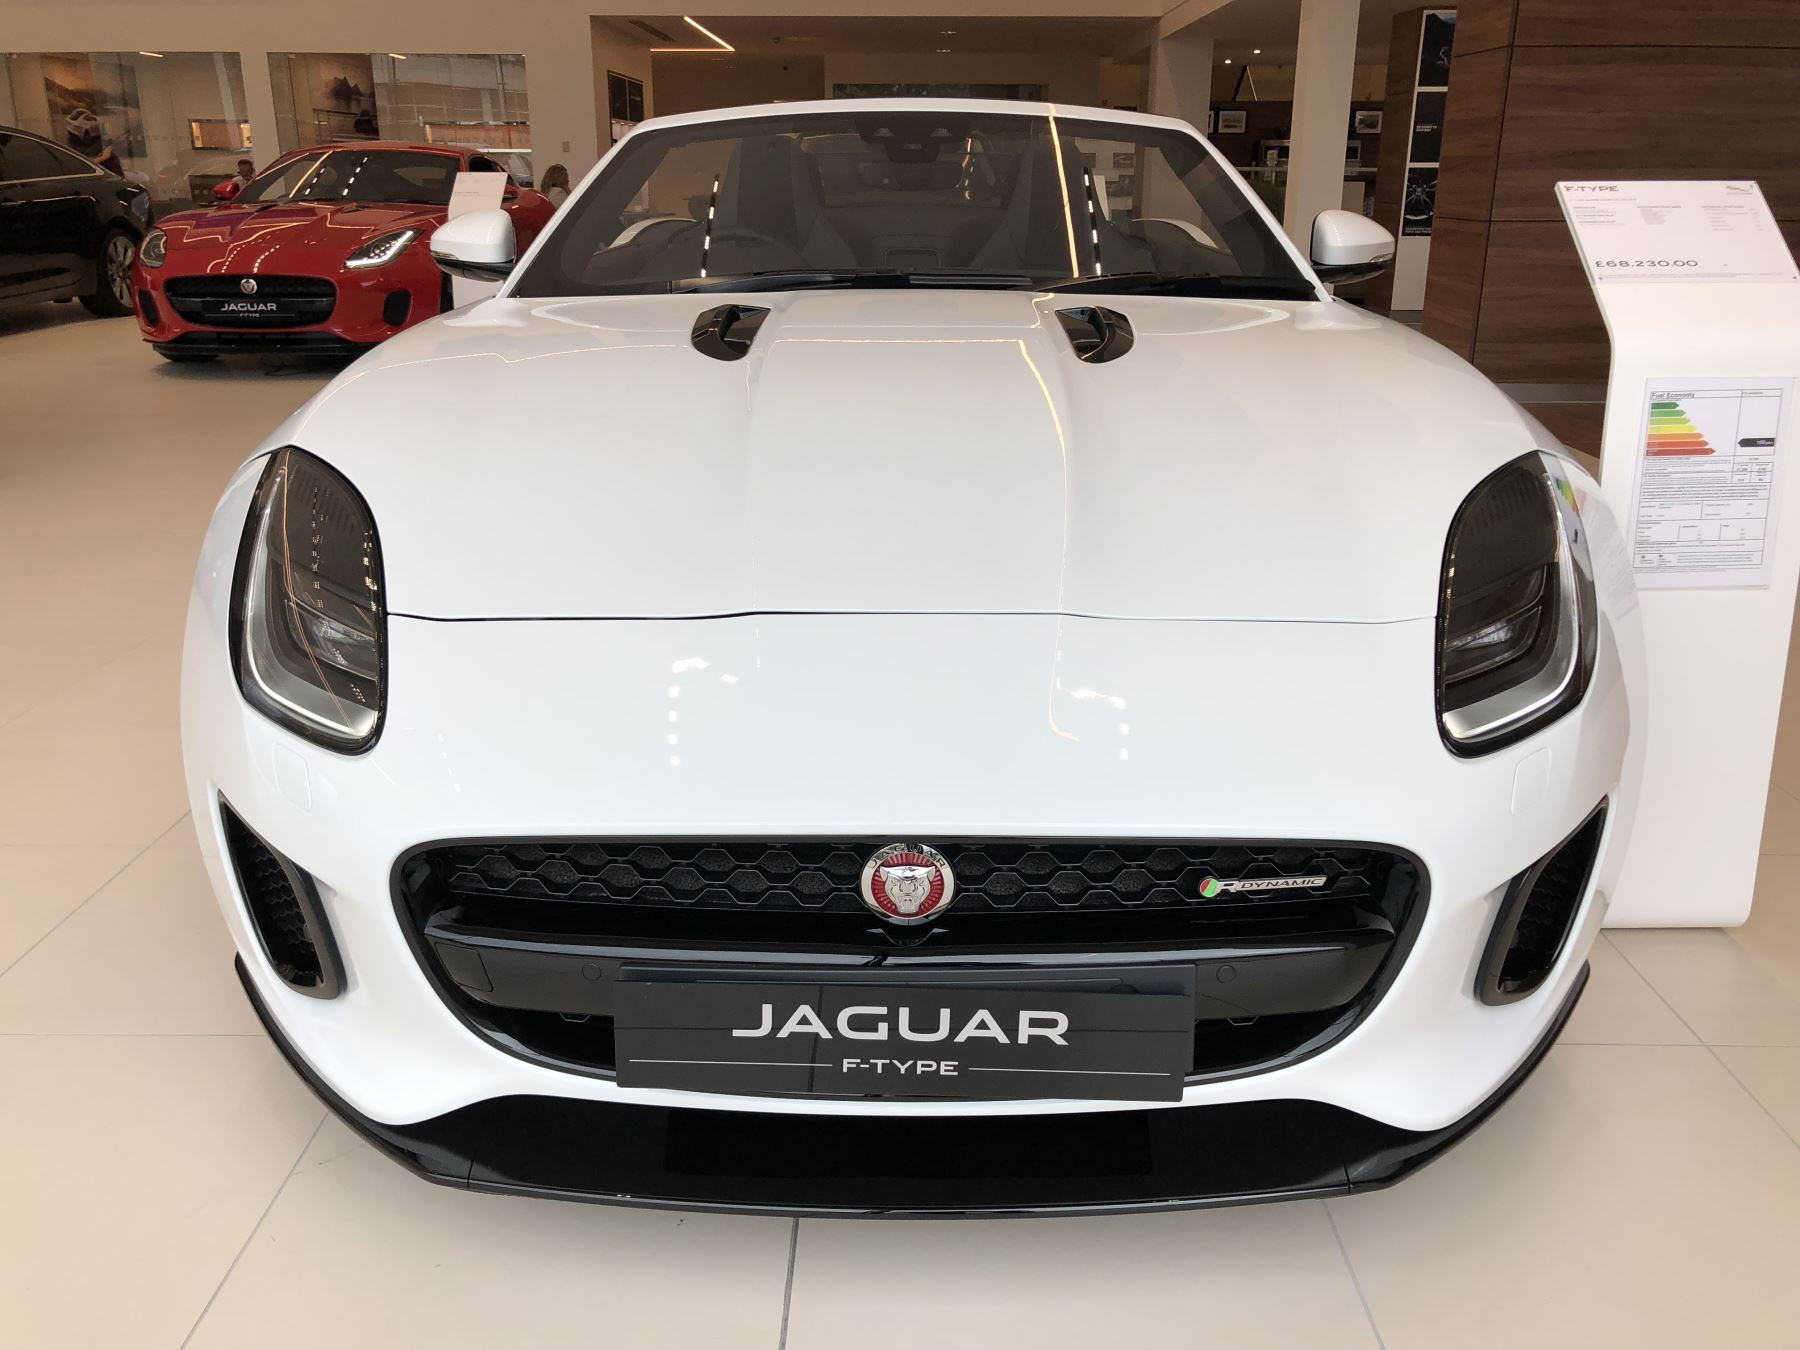 Jaguar F-TYPE 3.0 Supercharged V6 image 2